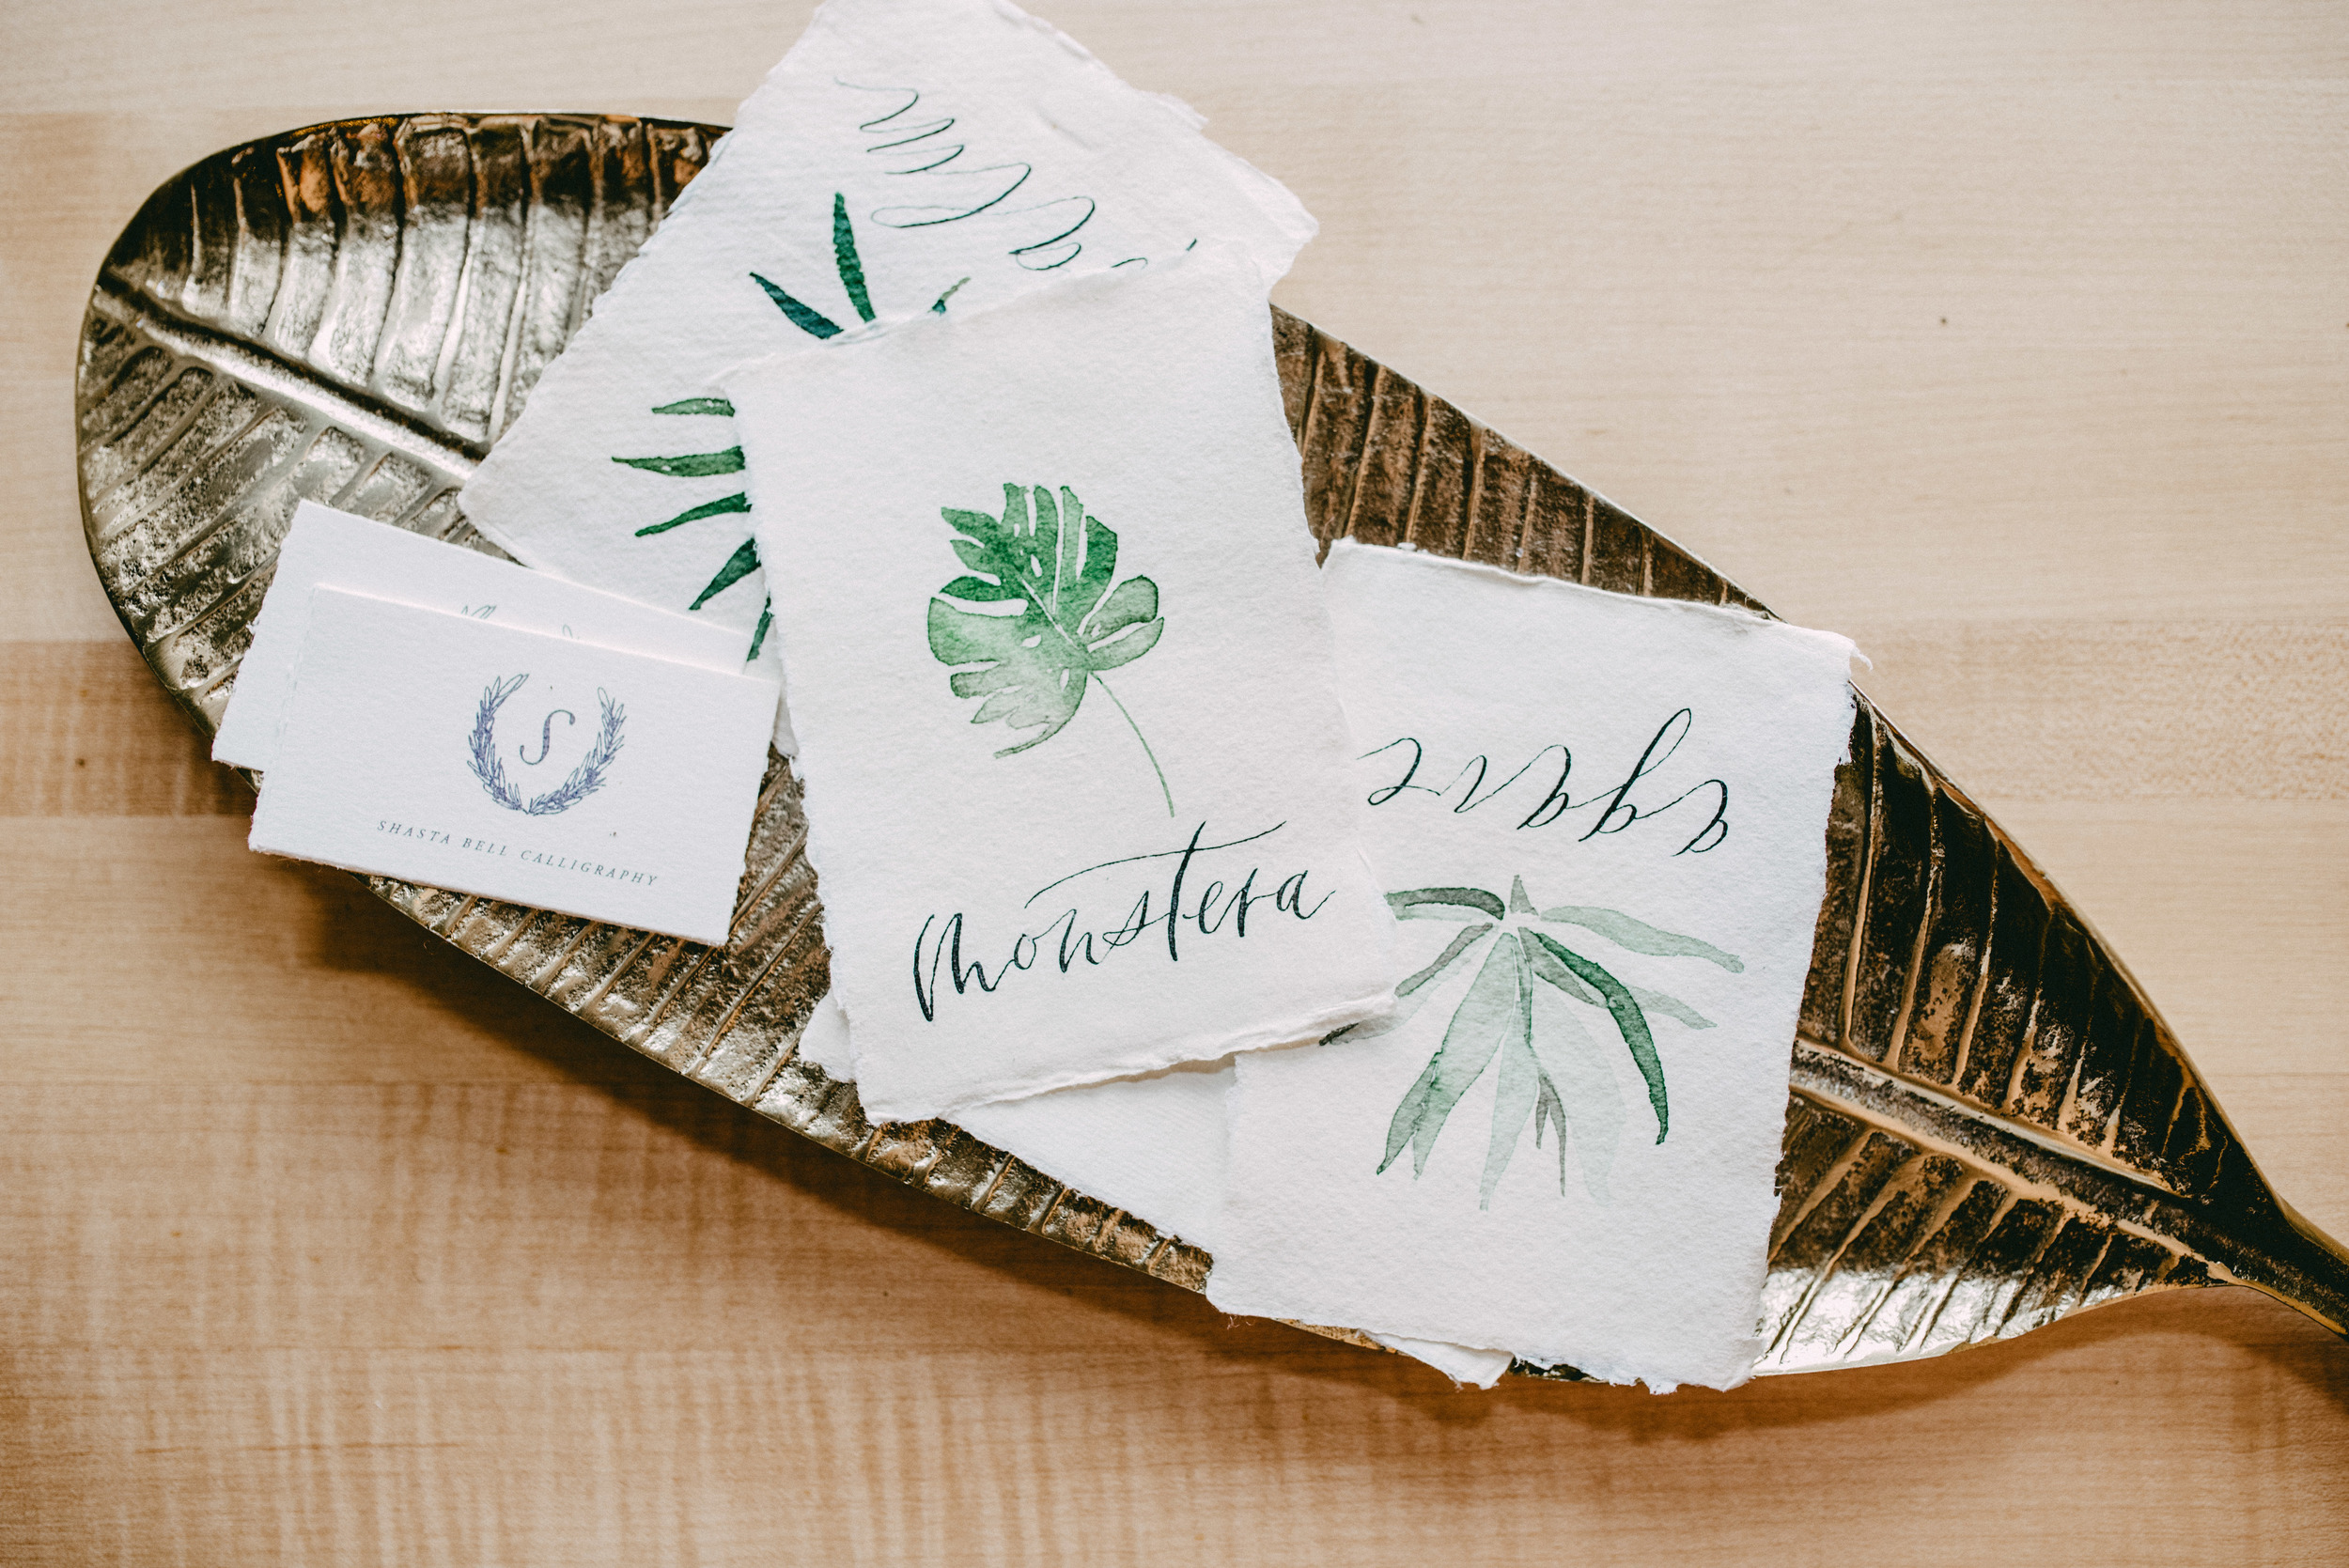 Hair + Makeup:  WarPaint International  | Bridal:  Linyage  | Floral:  Studio Emme  | Paper Goods:  Epitome Paper  | Calligraphy + Illustrations:   Shasta Bell Calligraphy  | Photography Elements:  Jaimee Morse Photography  | Rentals:  On Solid Ground Vintage Rentals